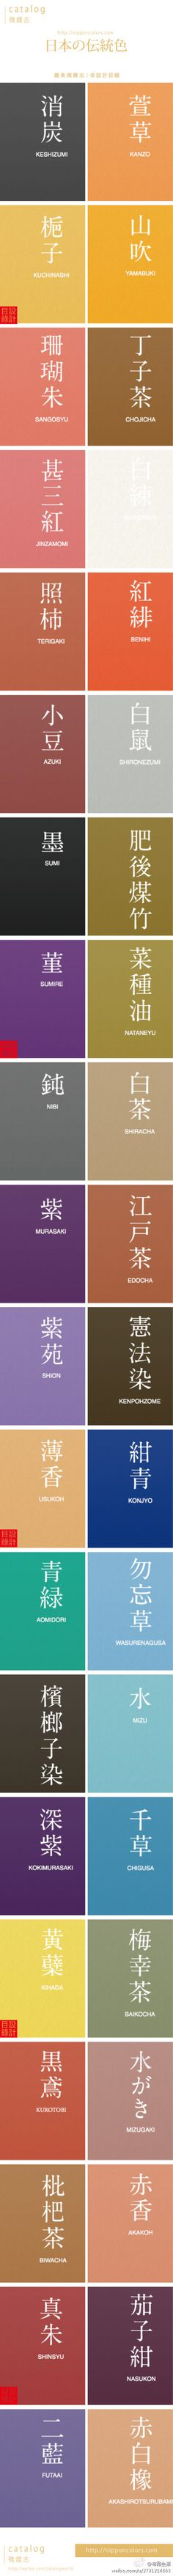 日本色 Web Design, Japan Design, Graphic Design, Asian Frames, Japanese Colors, Color Plan, Colour Pallette, Color Studies, Type Setting